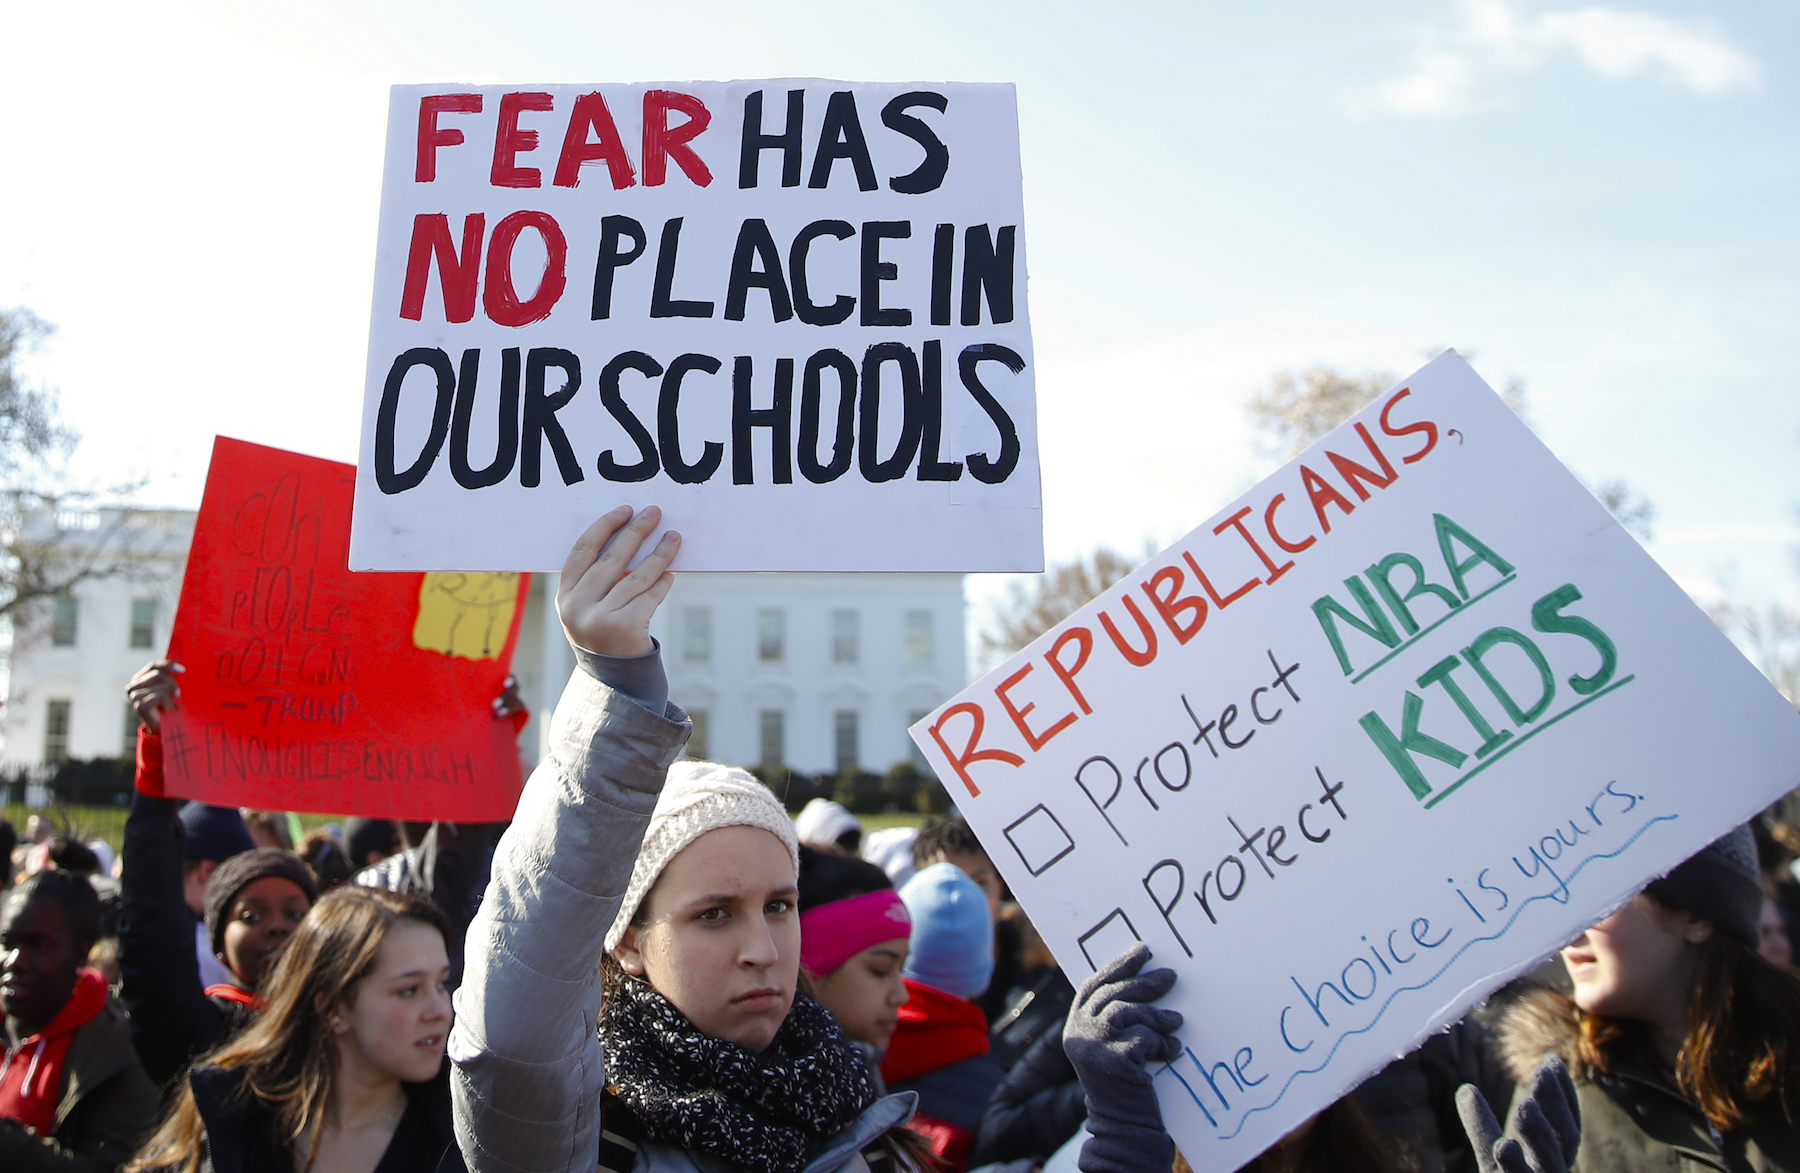 "<div class=""meta image-caption""><div class=""origin-logo origin-image ap""><span>AP</span></div><span class=""caption-text"">Students Rally in front of the White House in Washington, Wednesday, March 14, 2018. (AP Photo/Carolyn Kaster)</span></div>"